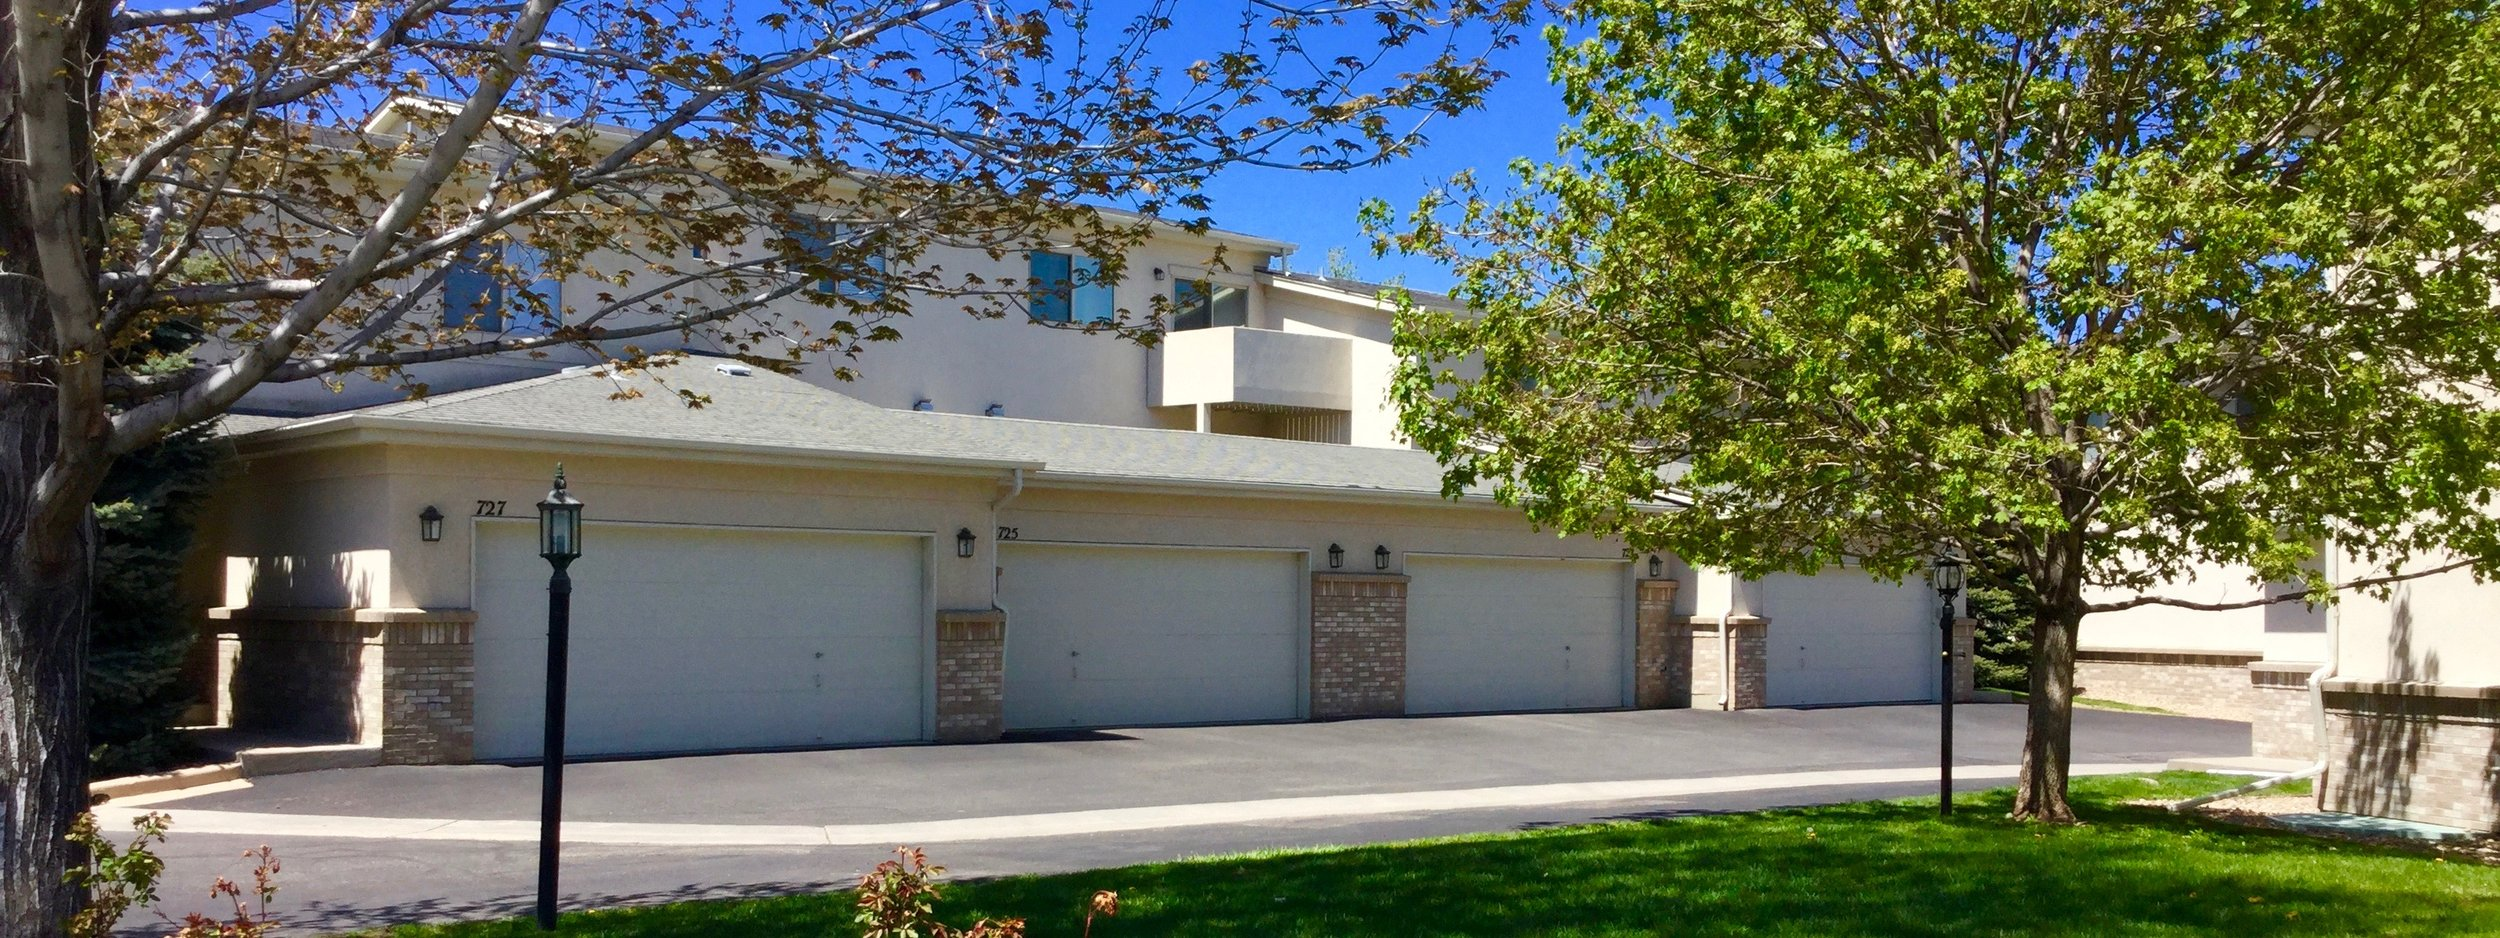 Briarwood Commons Townhomes in Golden, Colorado. Featuring two-car garages